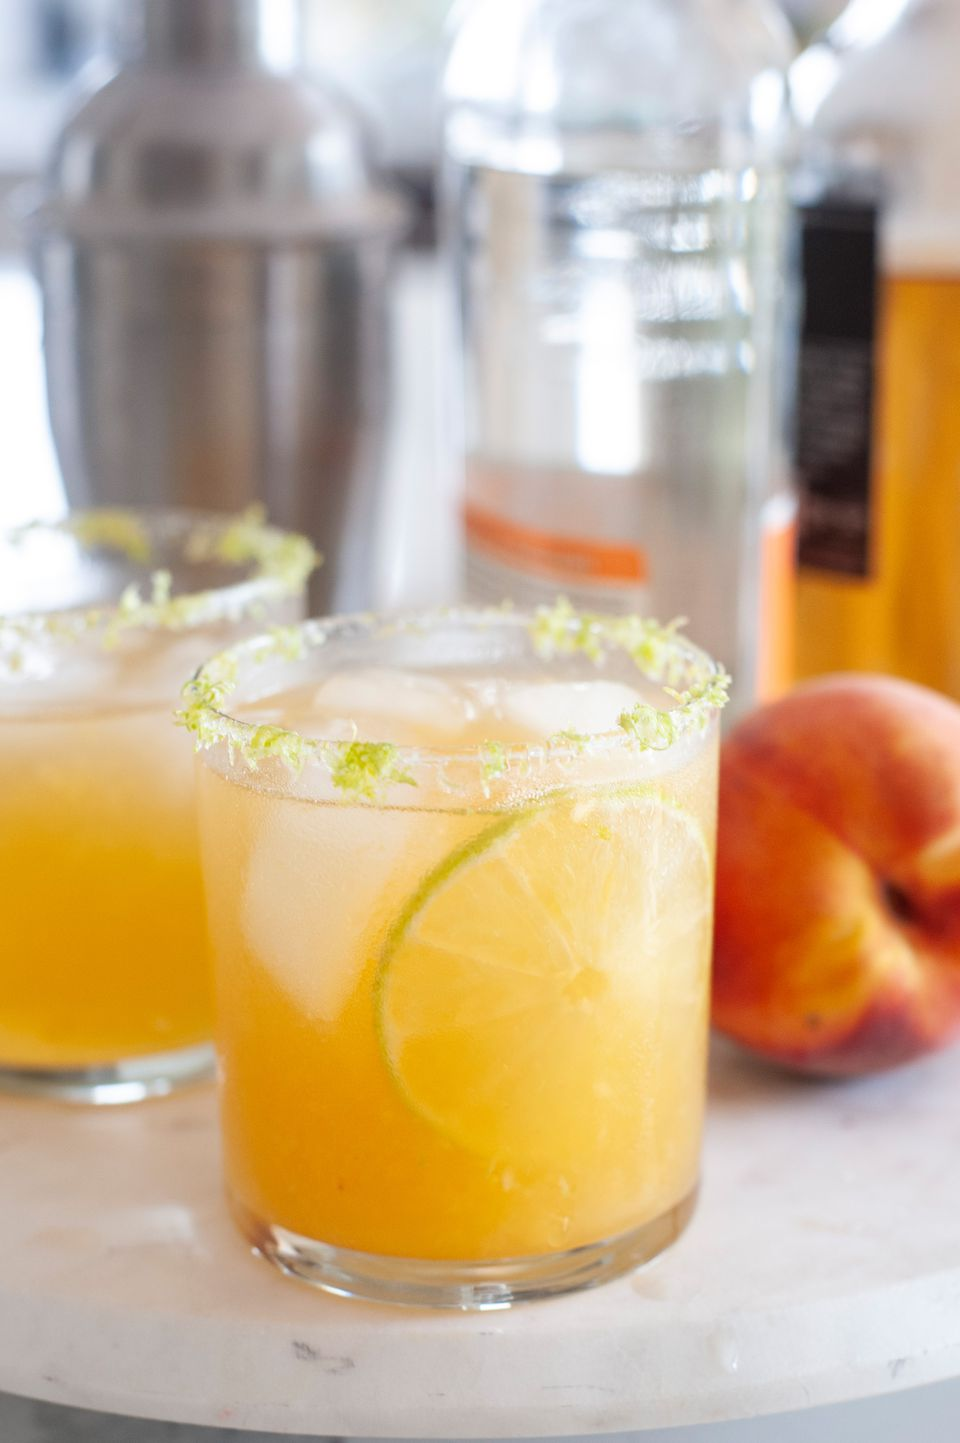 Peach margarita cocktails on a tray along with a cocktail shaker.